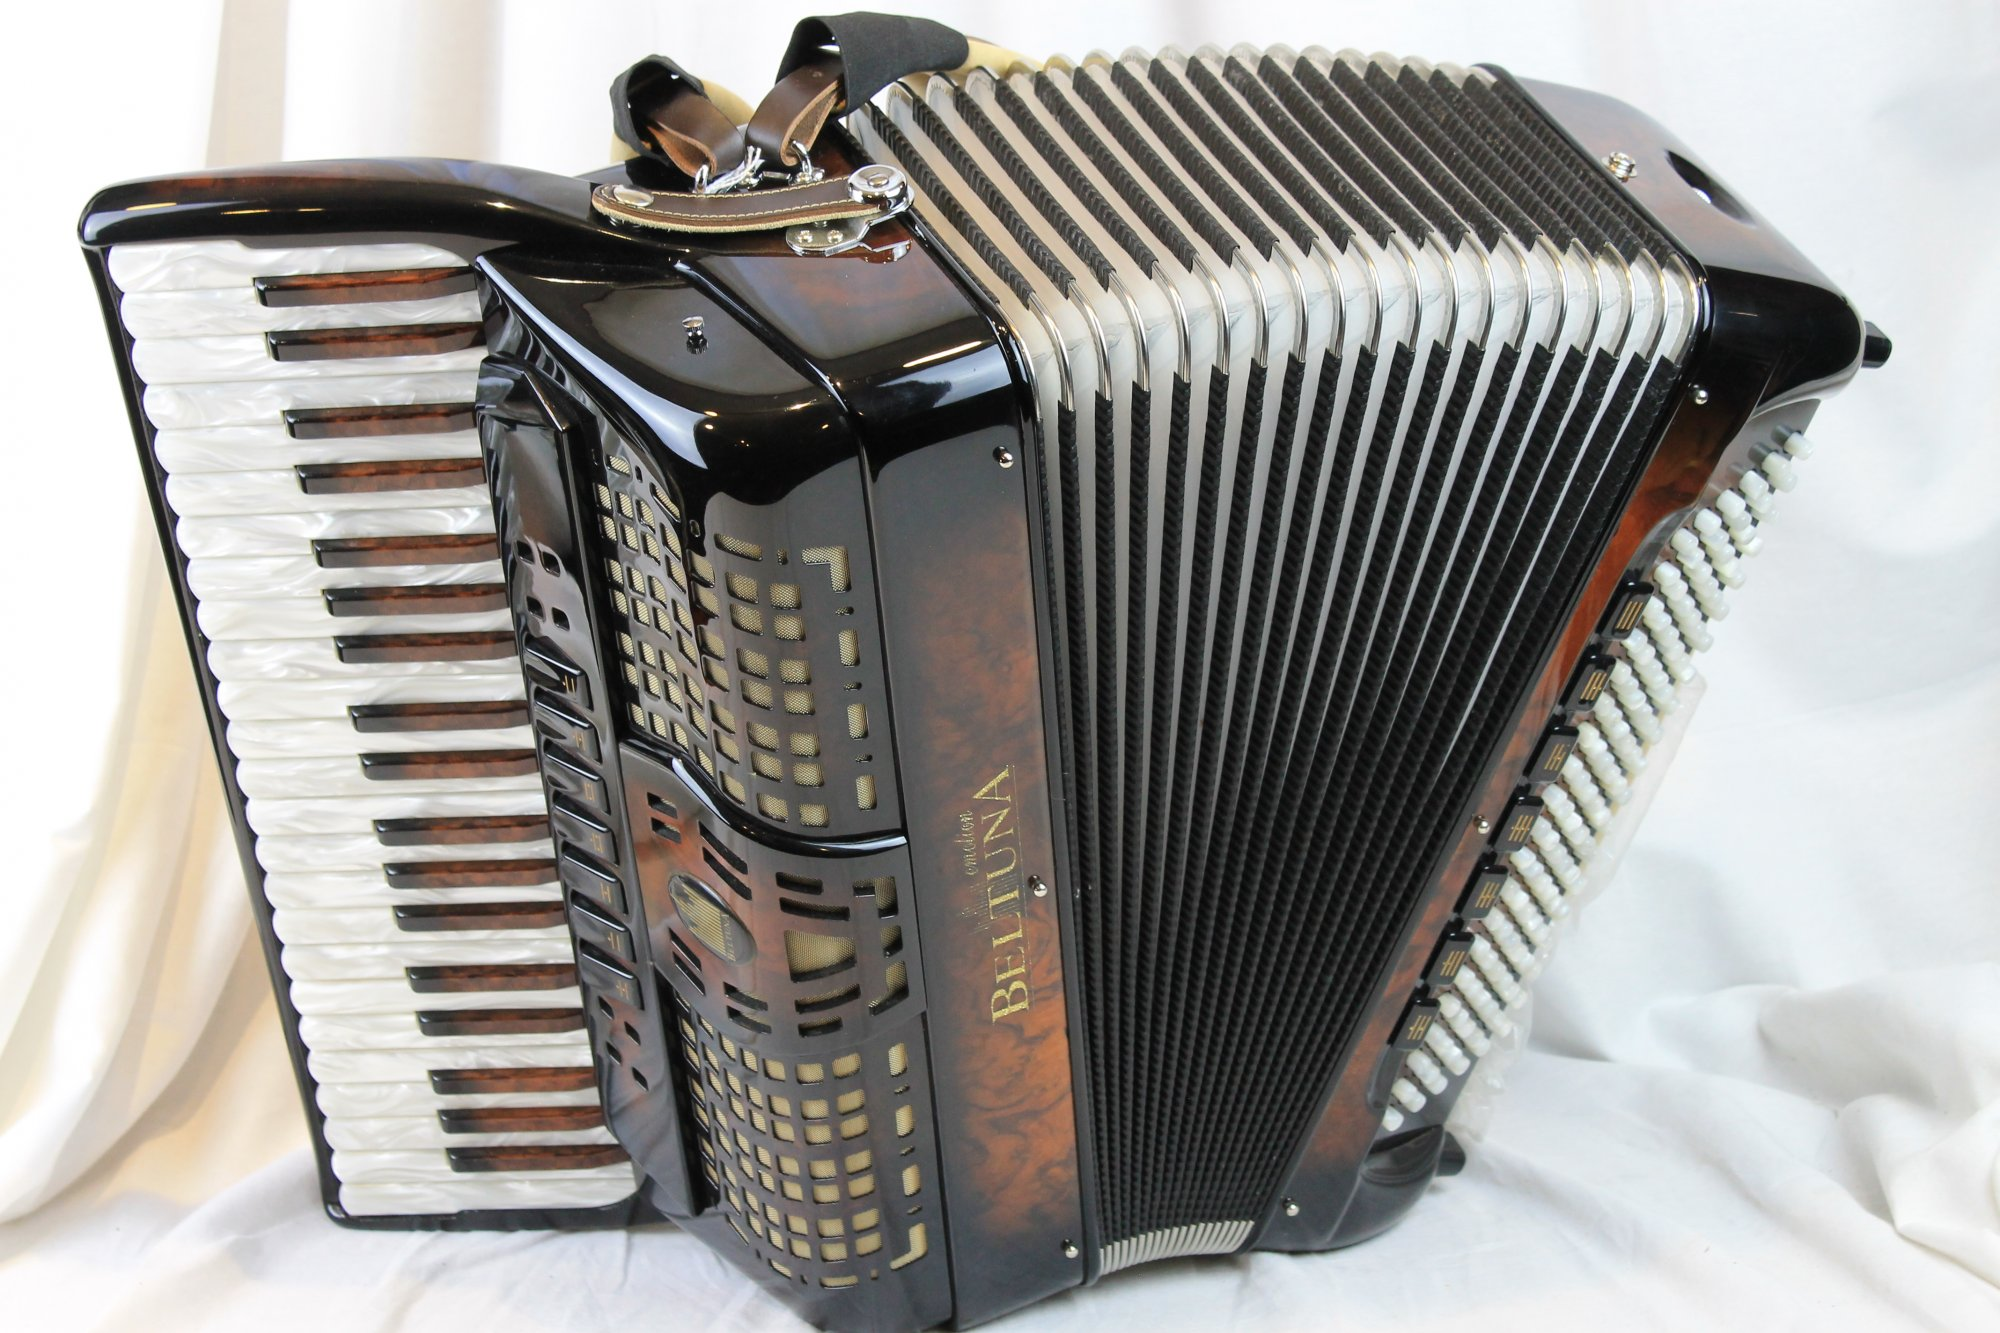 NEW Walnut Root Beltuna Prestige III Piano Accordion LMM 42 120